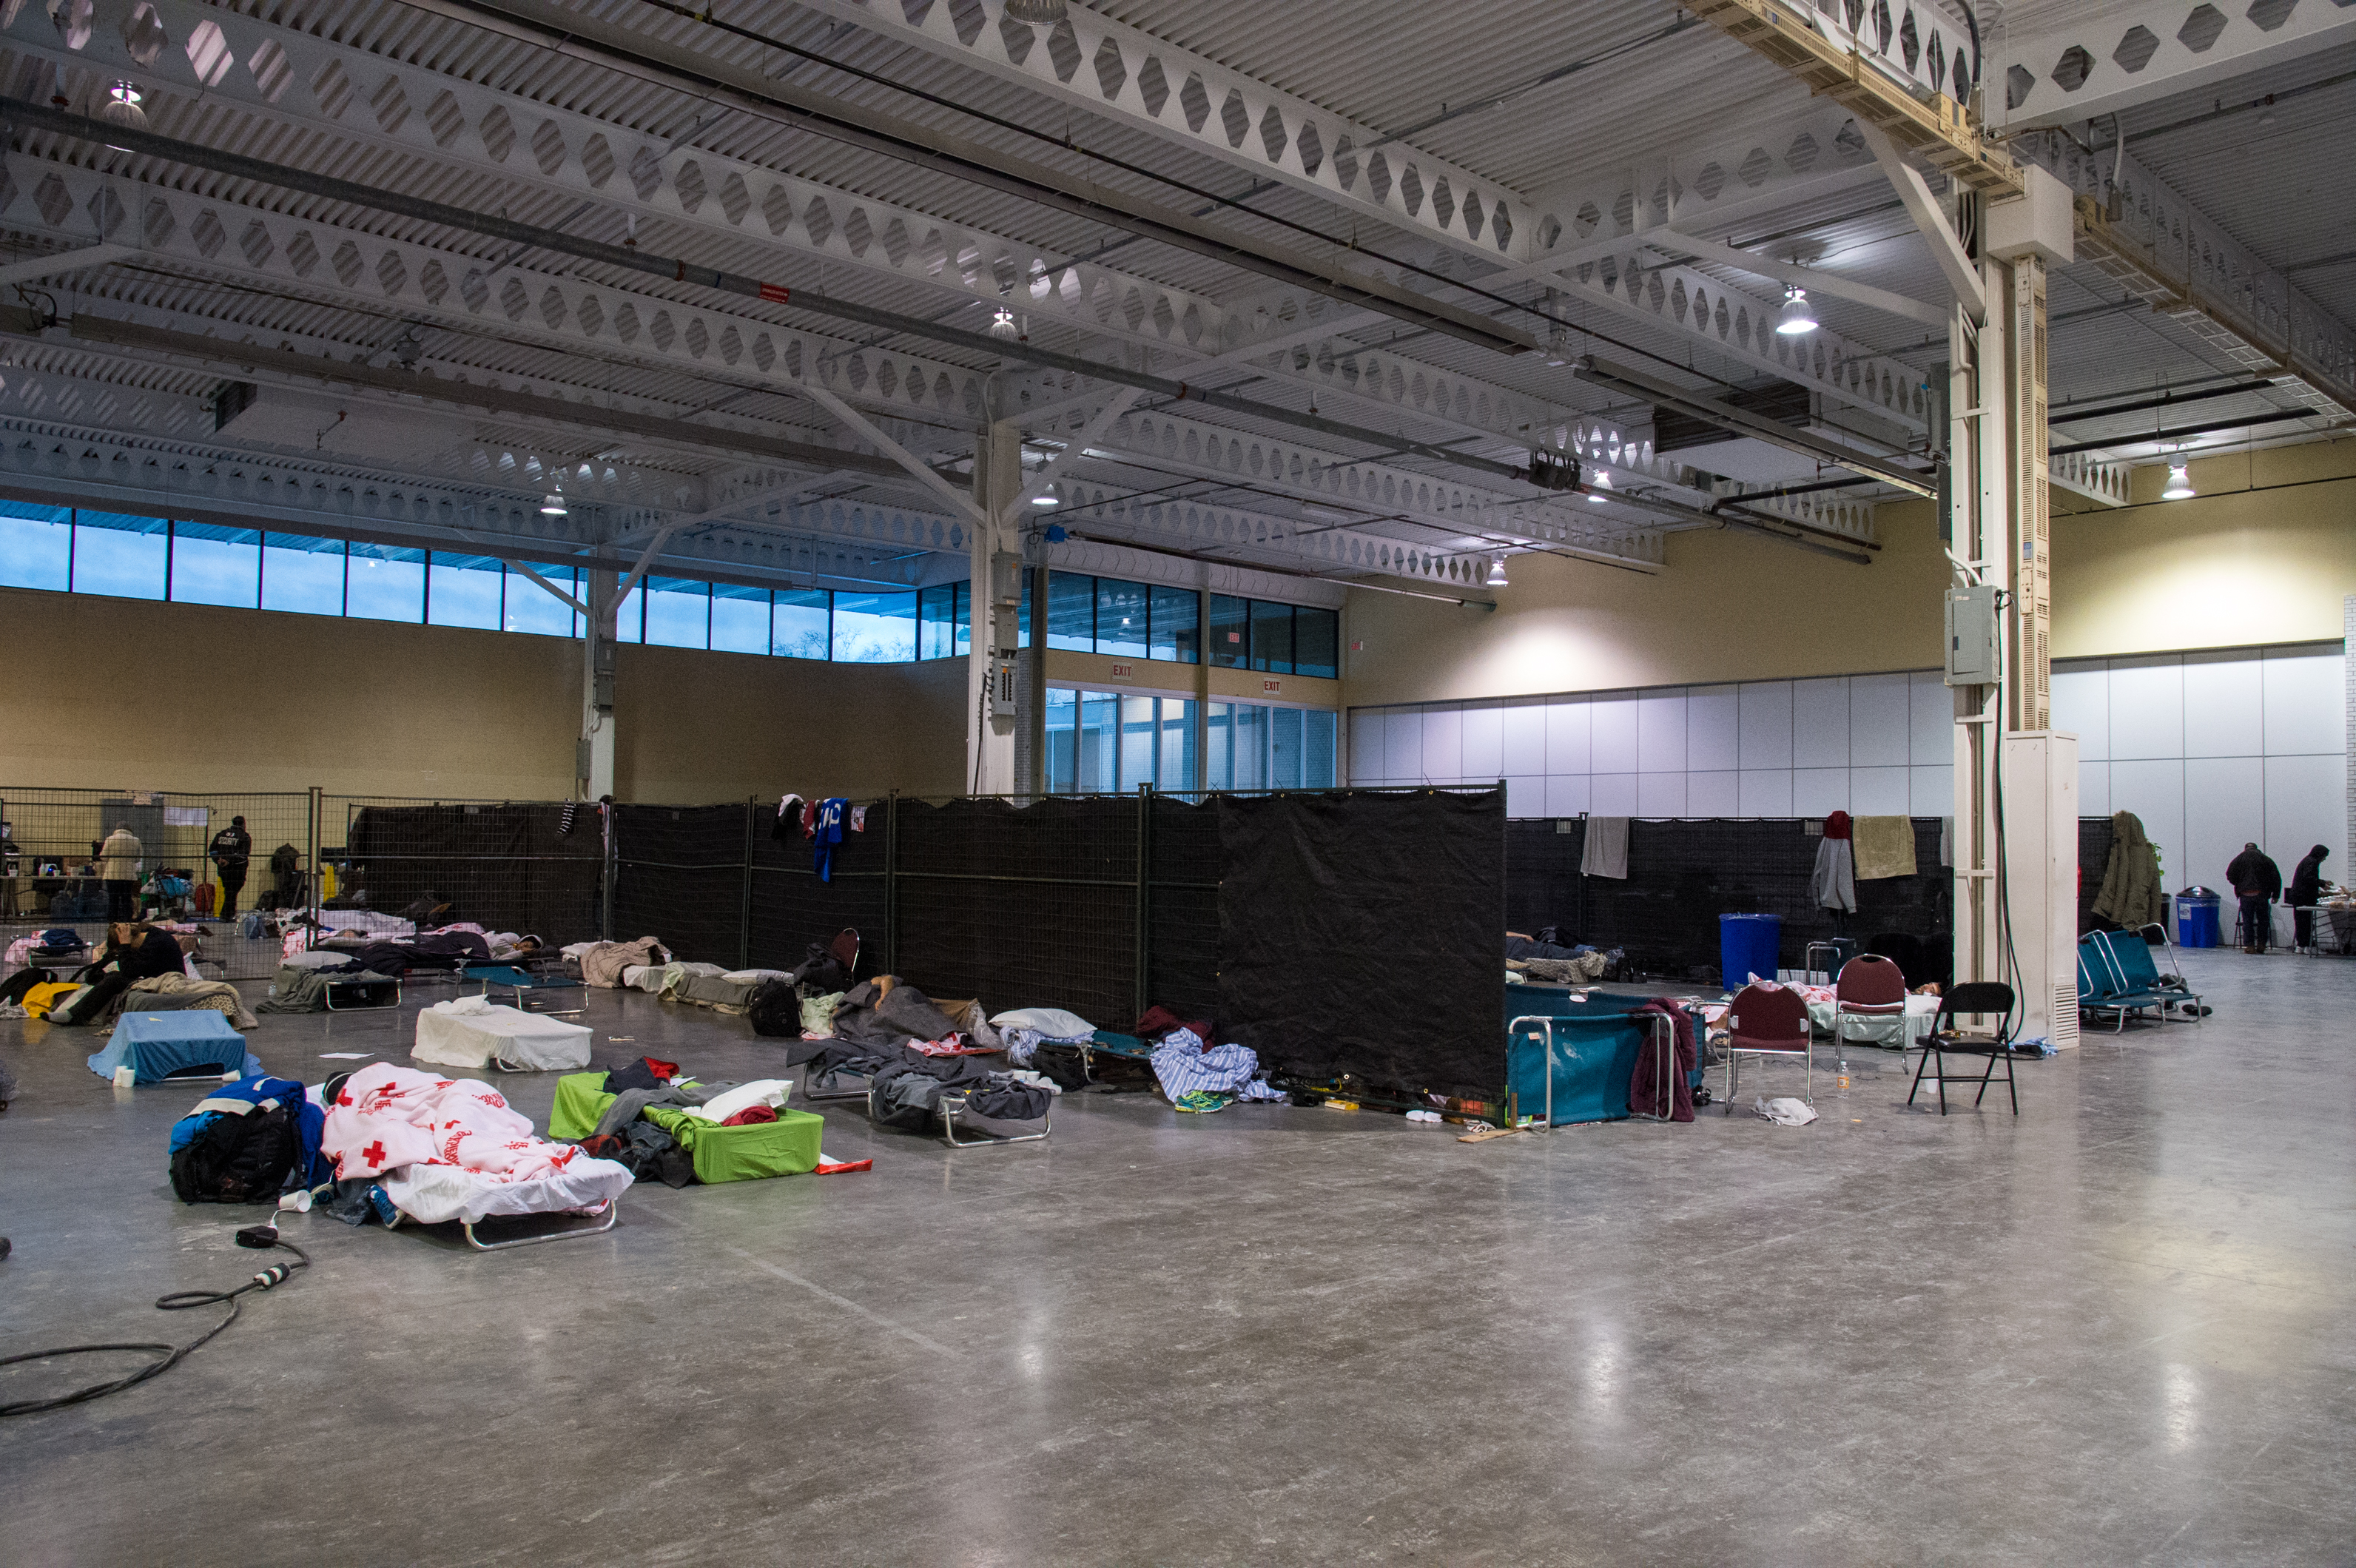 Photo of the interior of the Better Living Centre at Exhibition Place showing cots in a open area divided by curtain walls